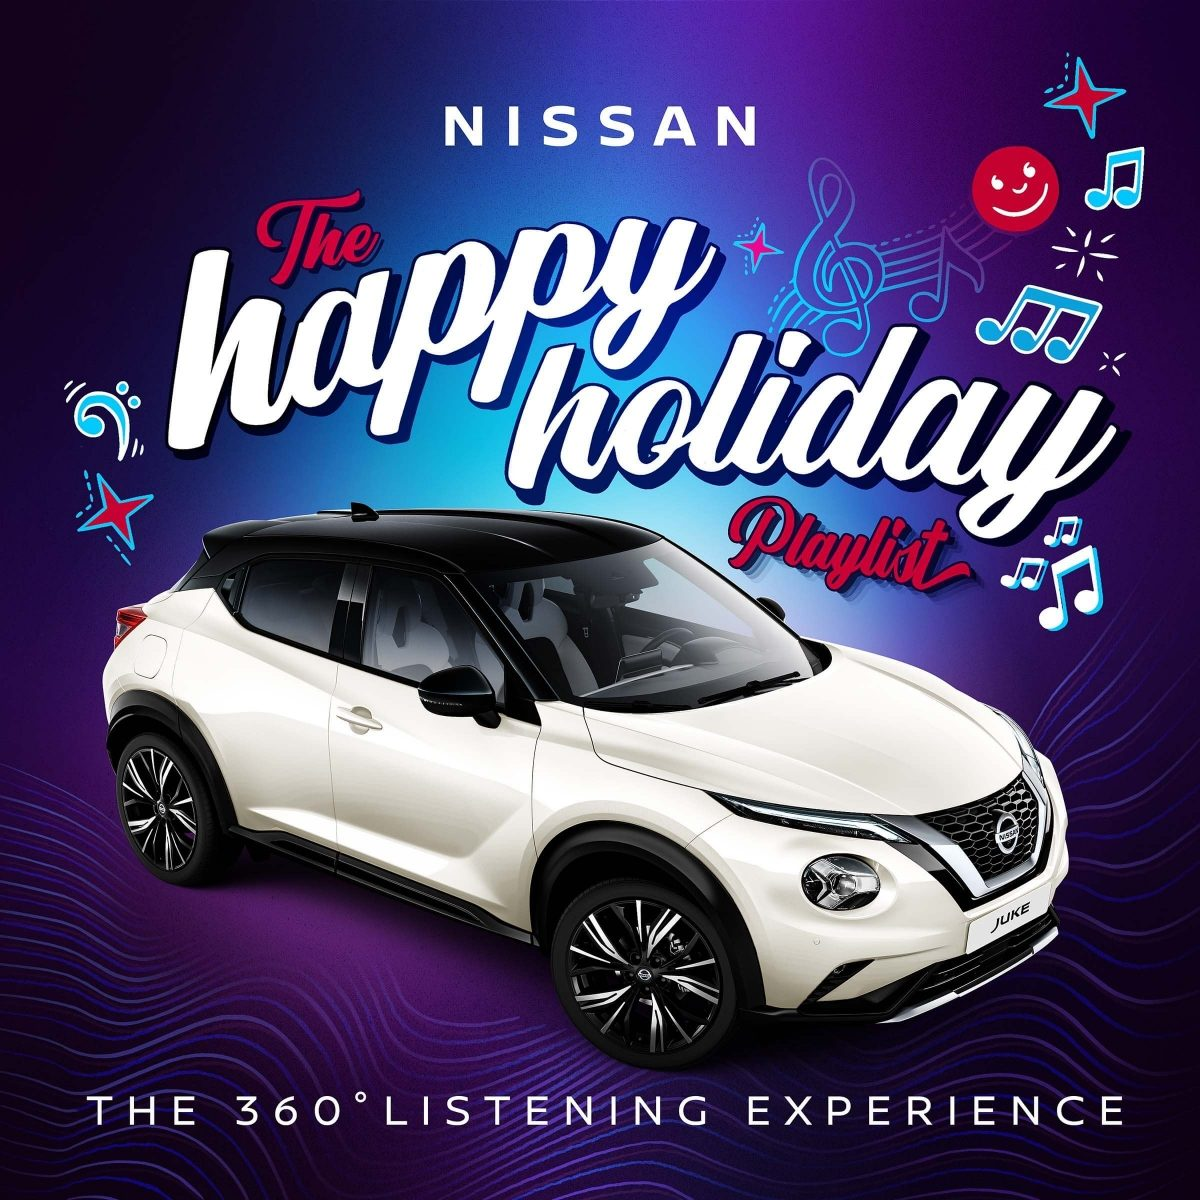 Nissan Happy Holiday 360 degreee listening experience